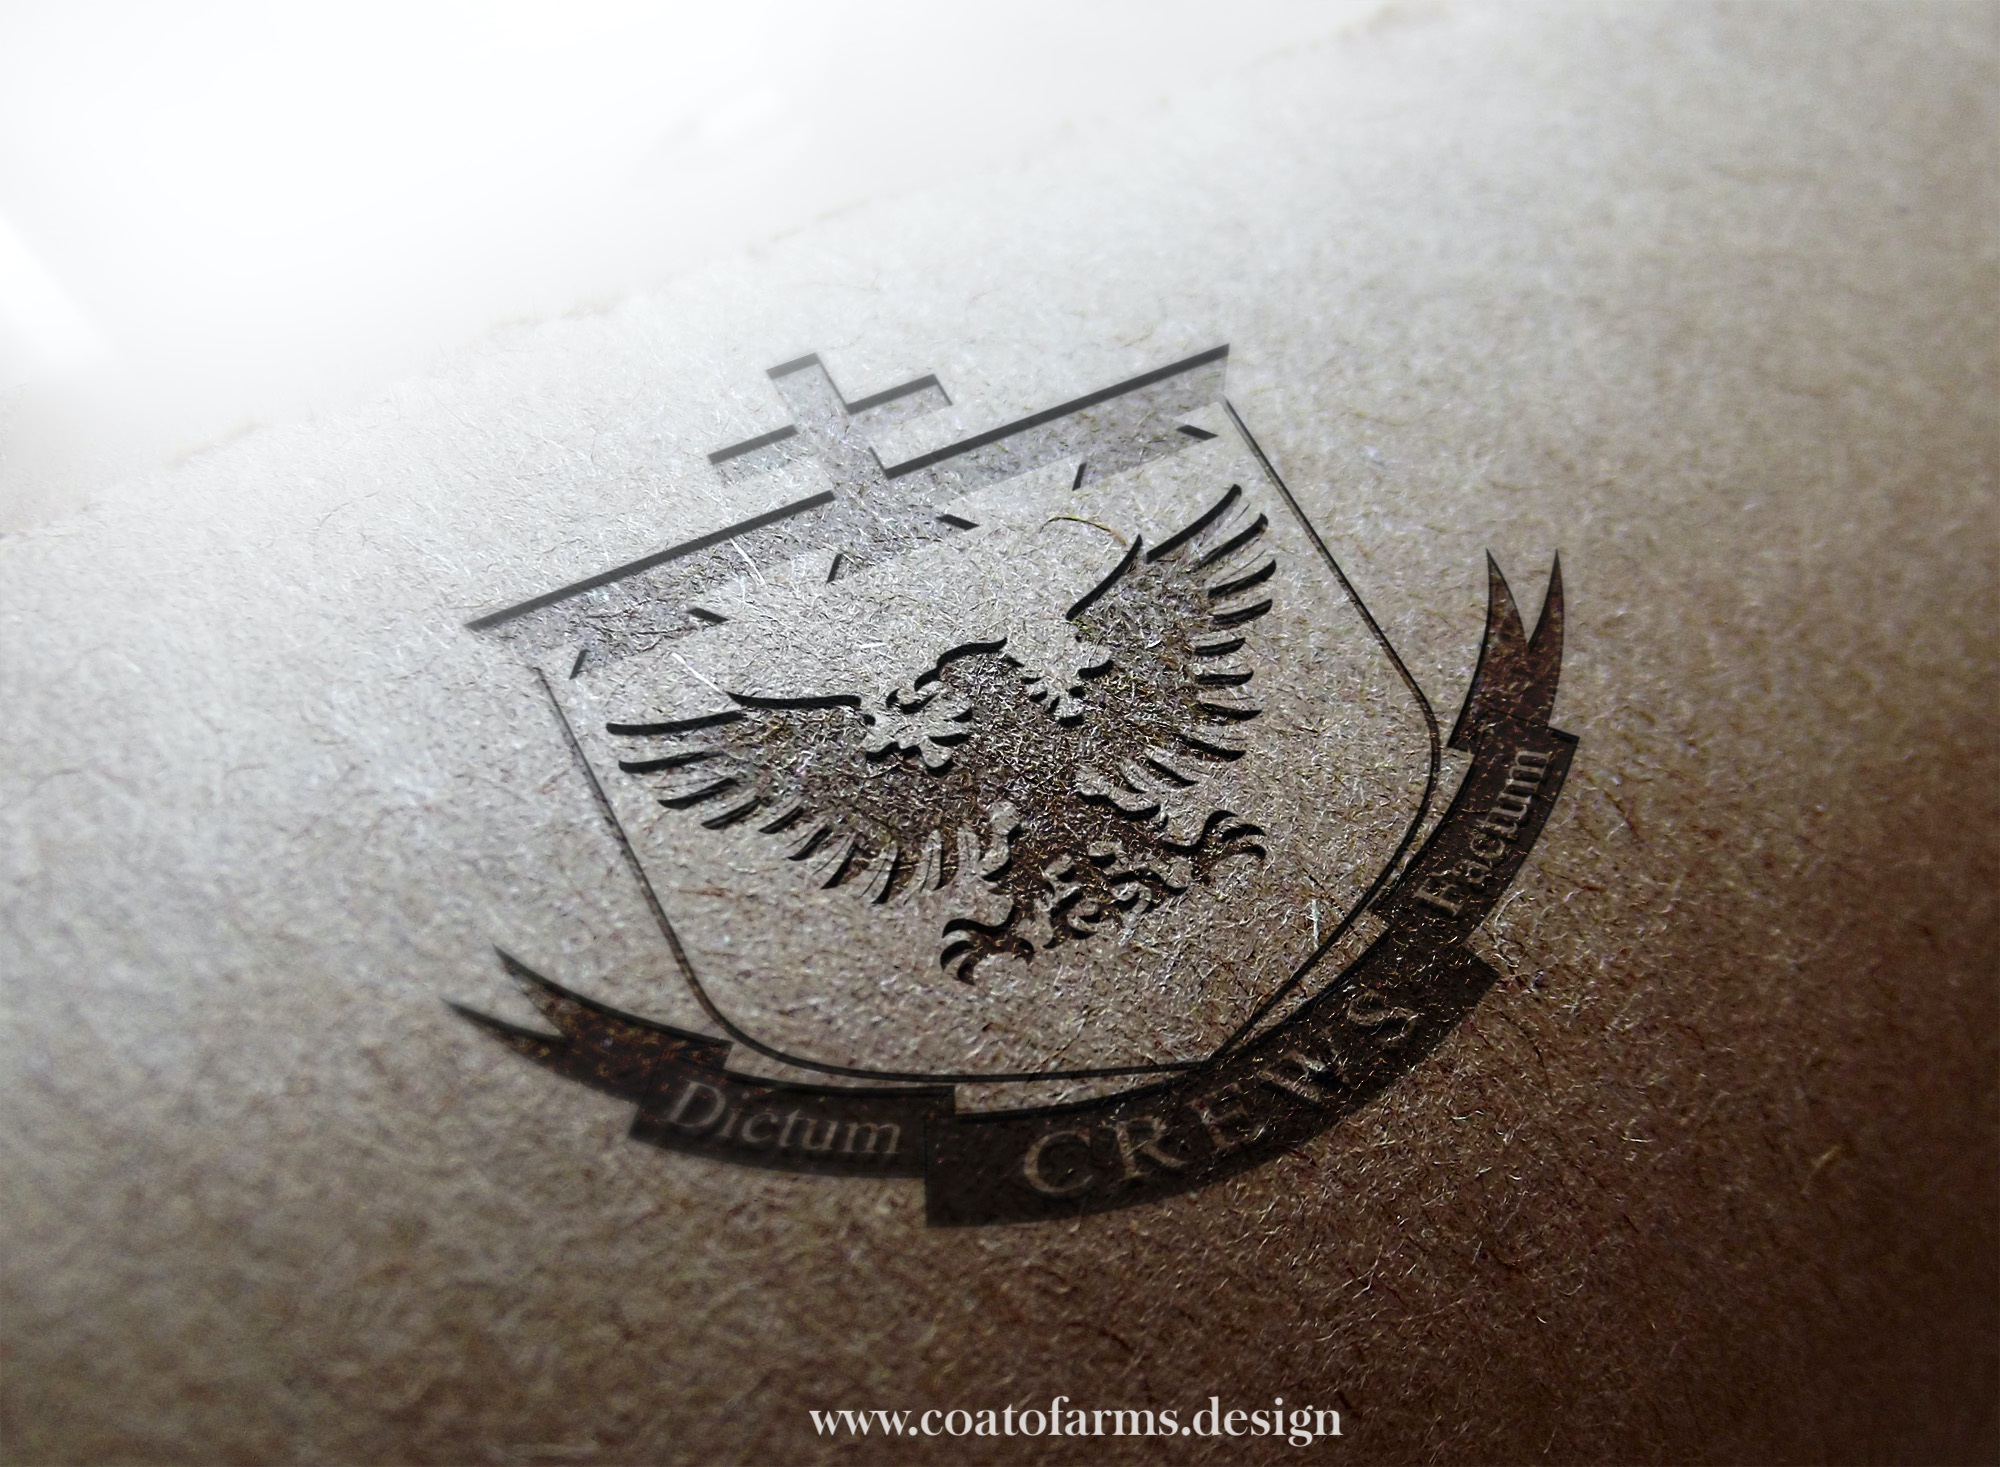 A simple coat of arms (emblem) I designed for a client from the USA based on his rough sketch